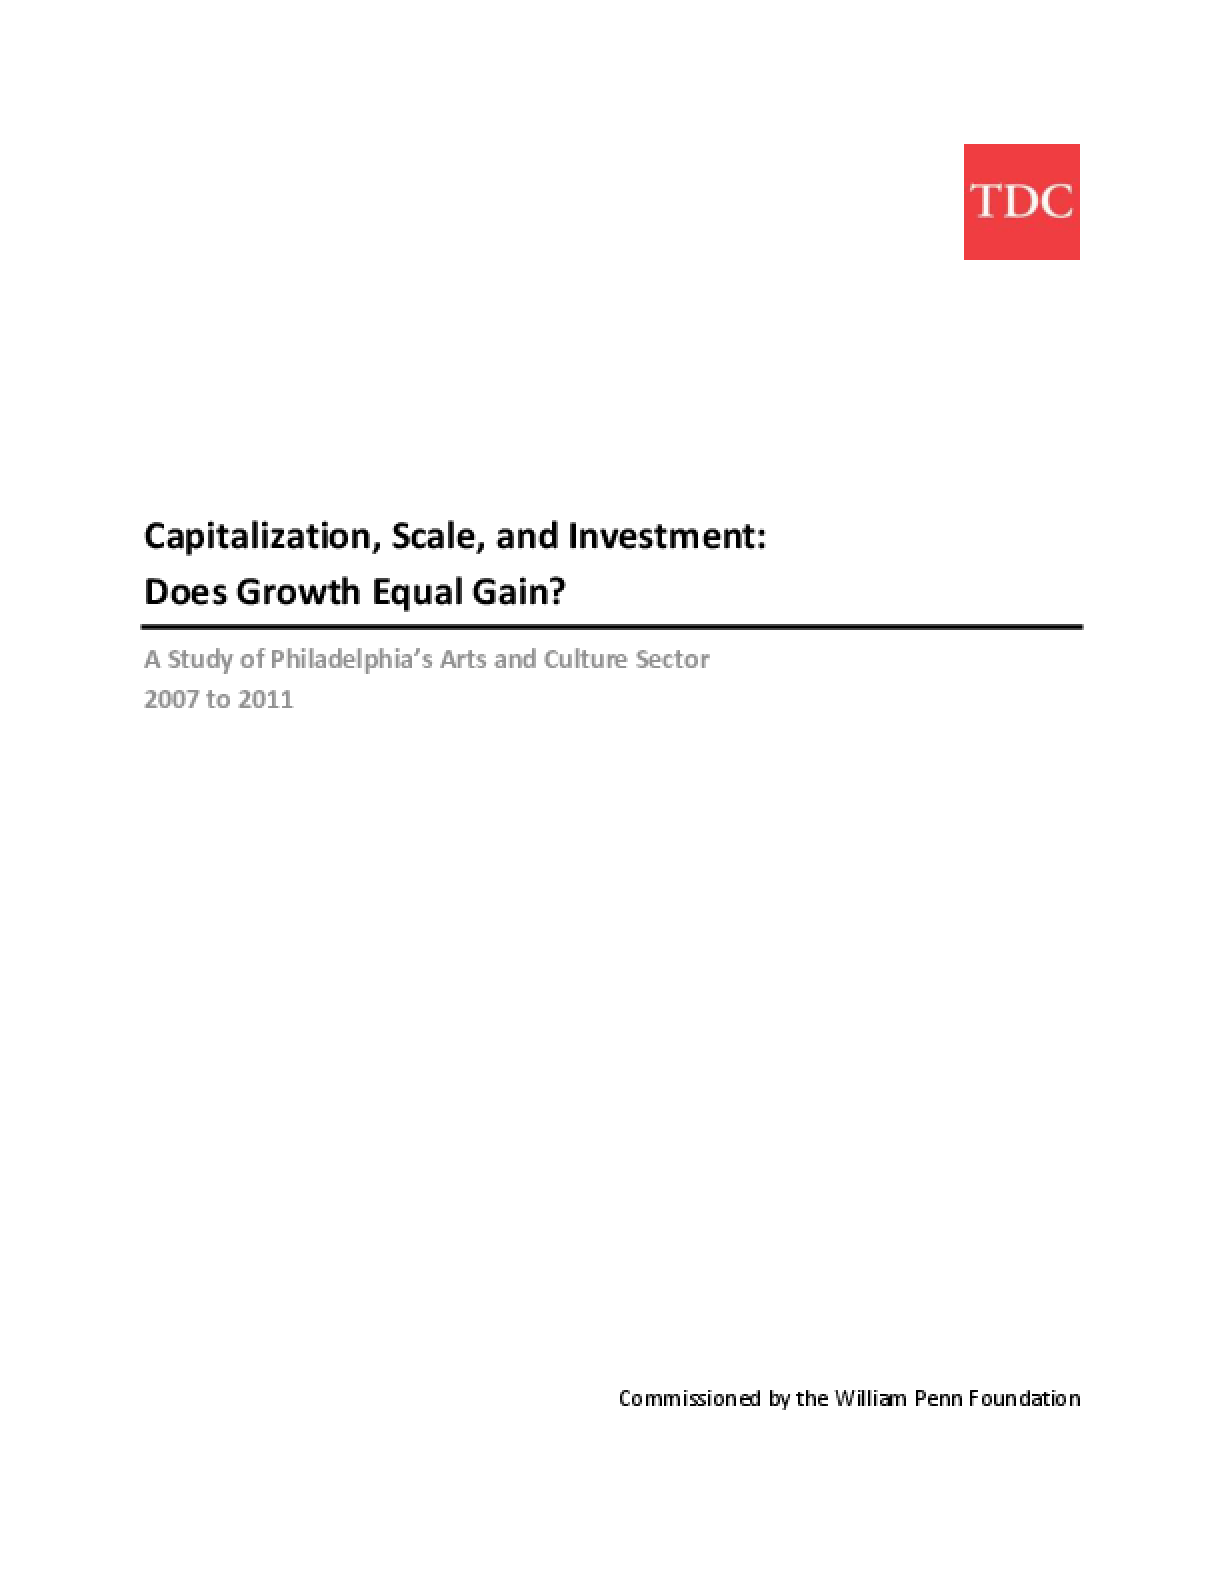 Capitalization, Scale, and Investment: Does Growth Equal Gain?